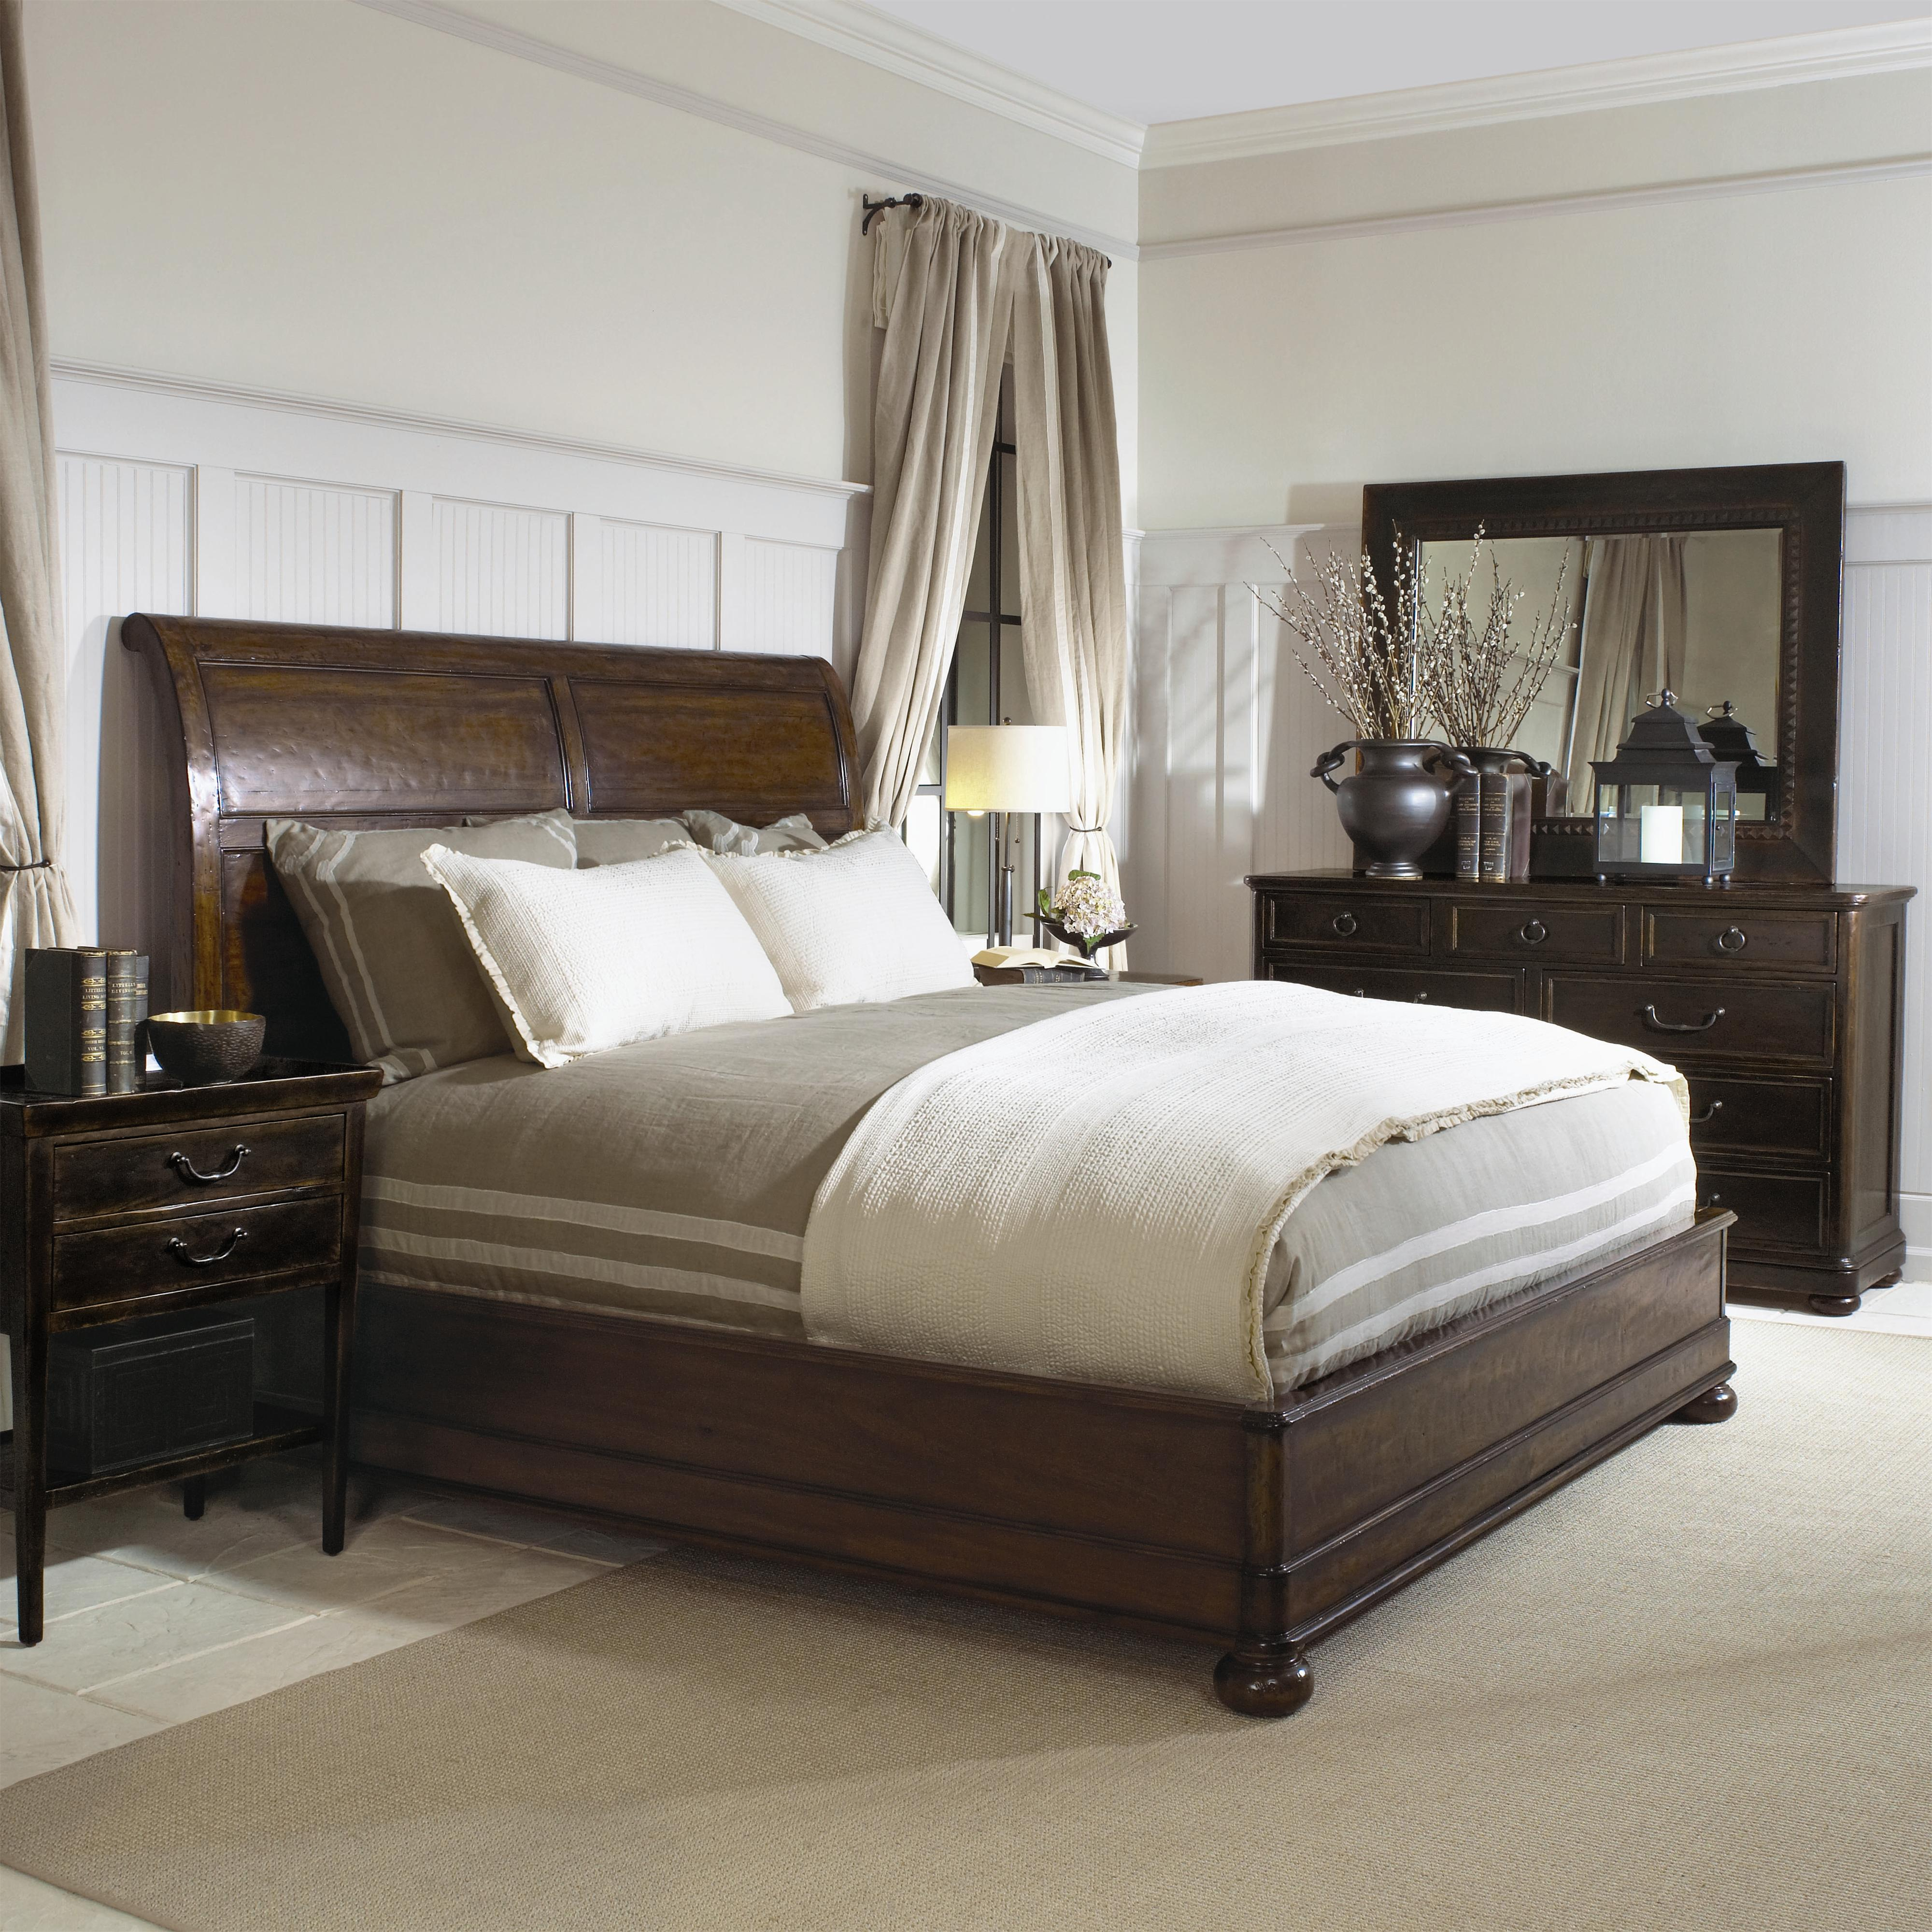 bedroom design with SPRINTZ FURNITURE with white bedding matched with white wall plus tan curtain ideas